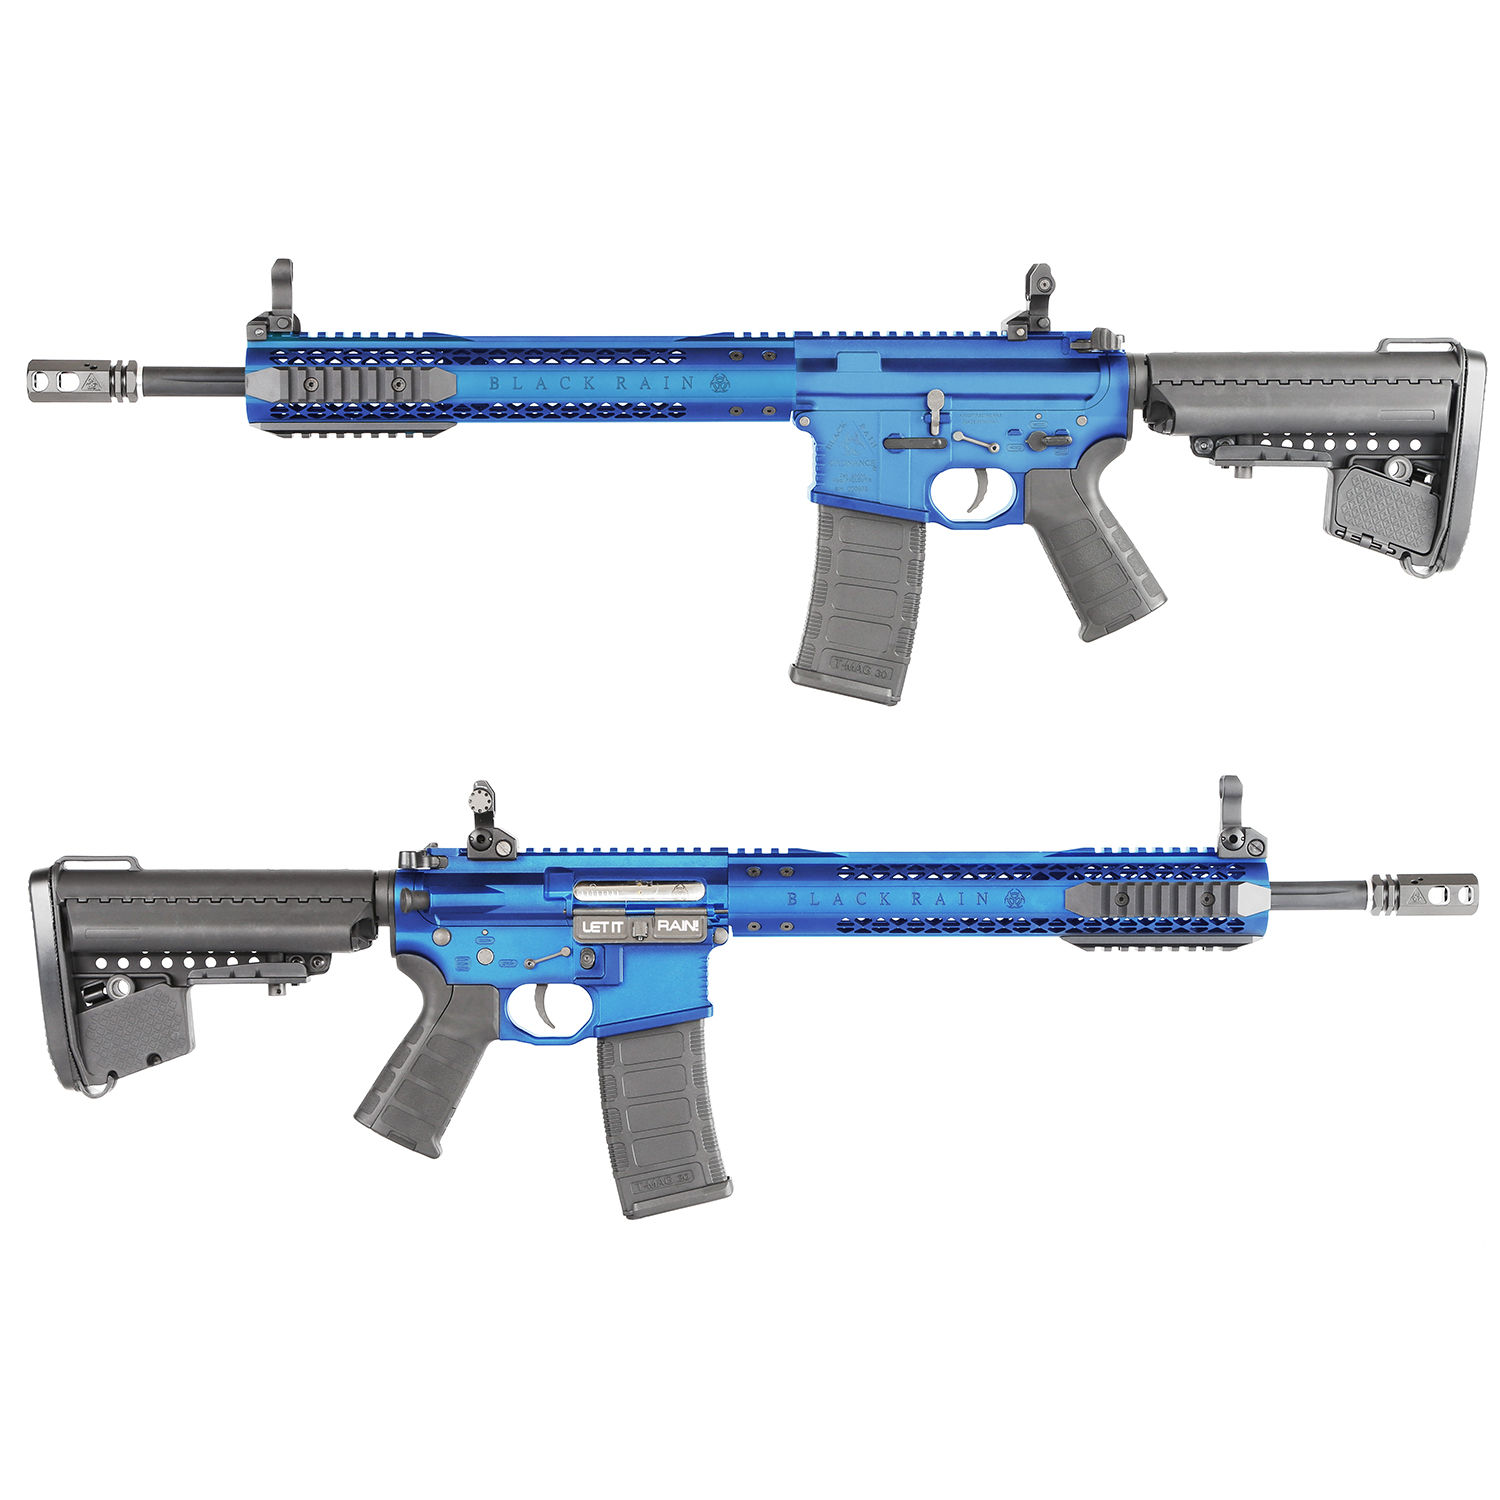 King Arms Black Rain Ordnance Licensed AEG Rifle - BLUE